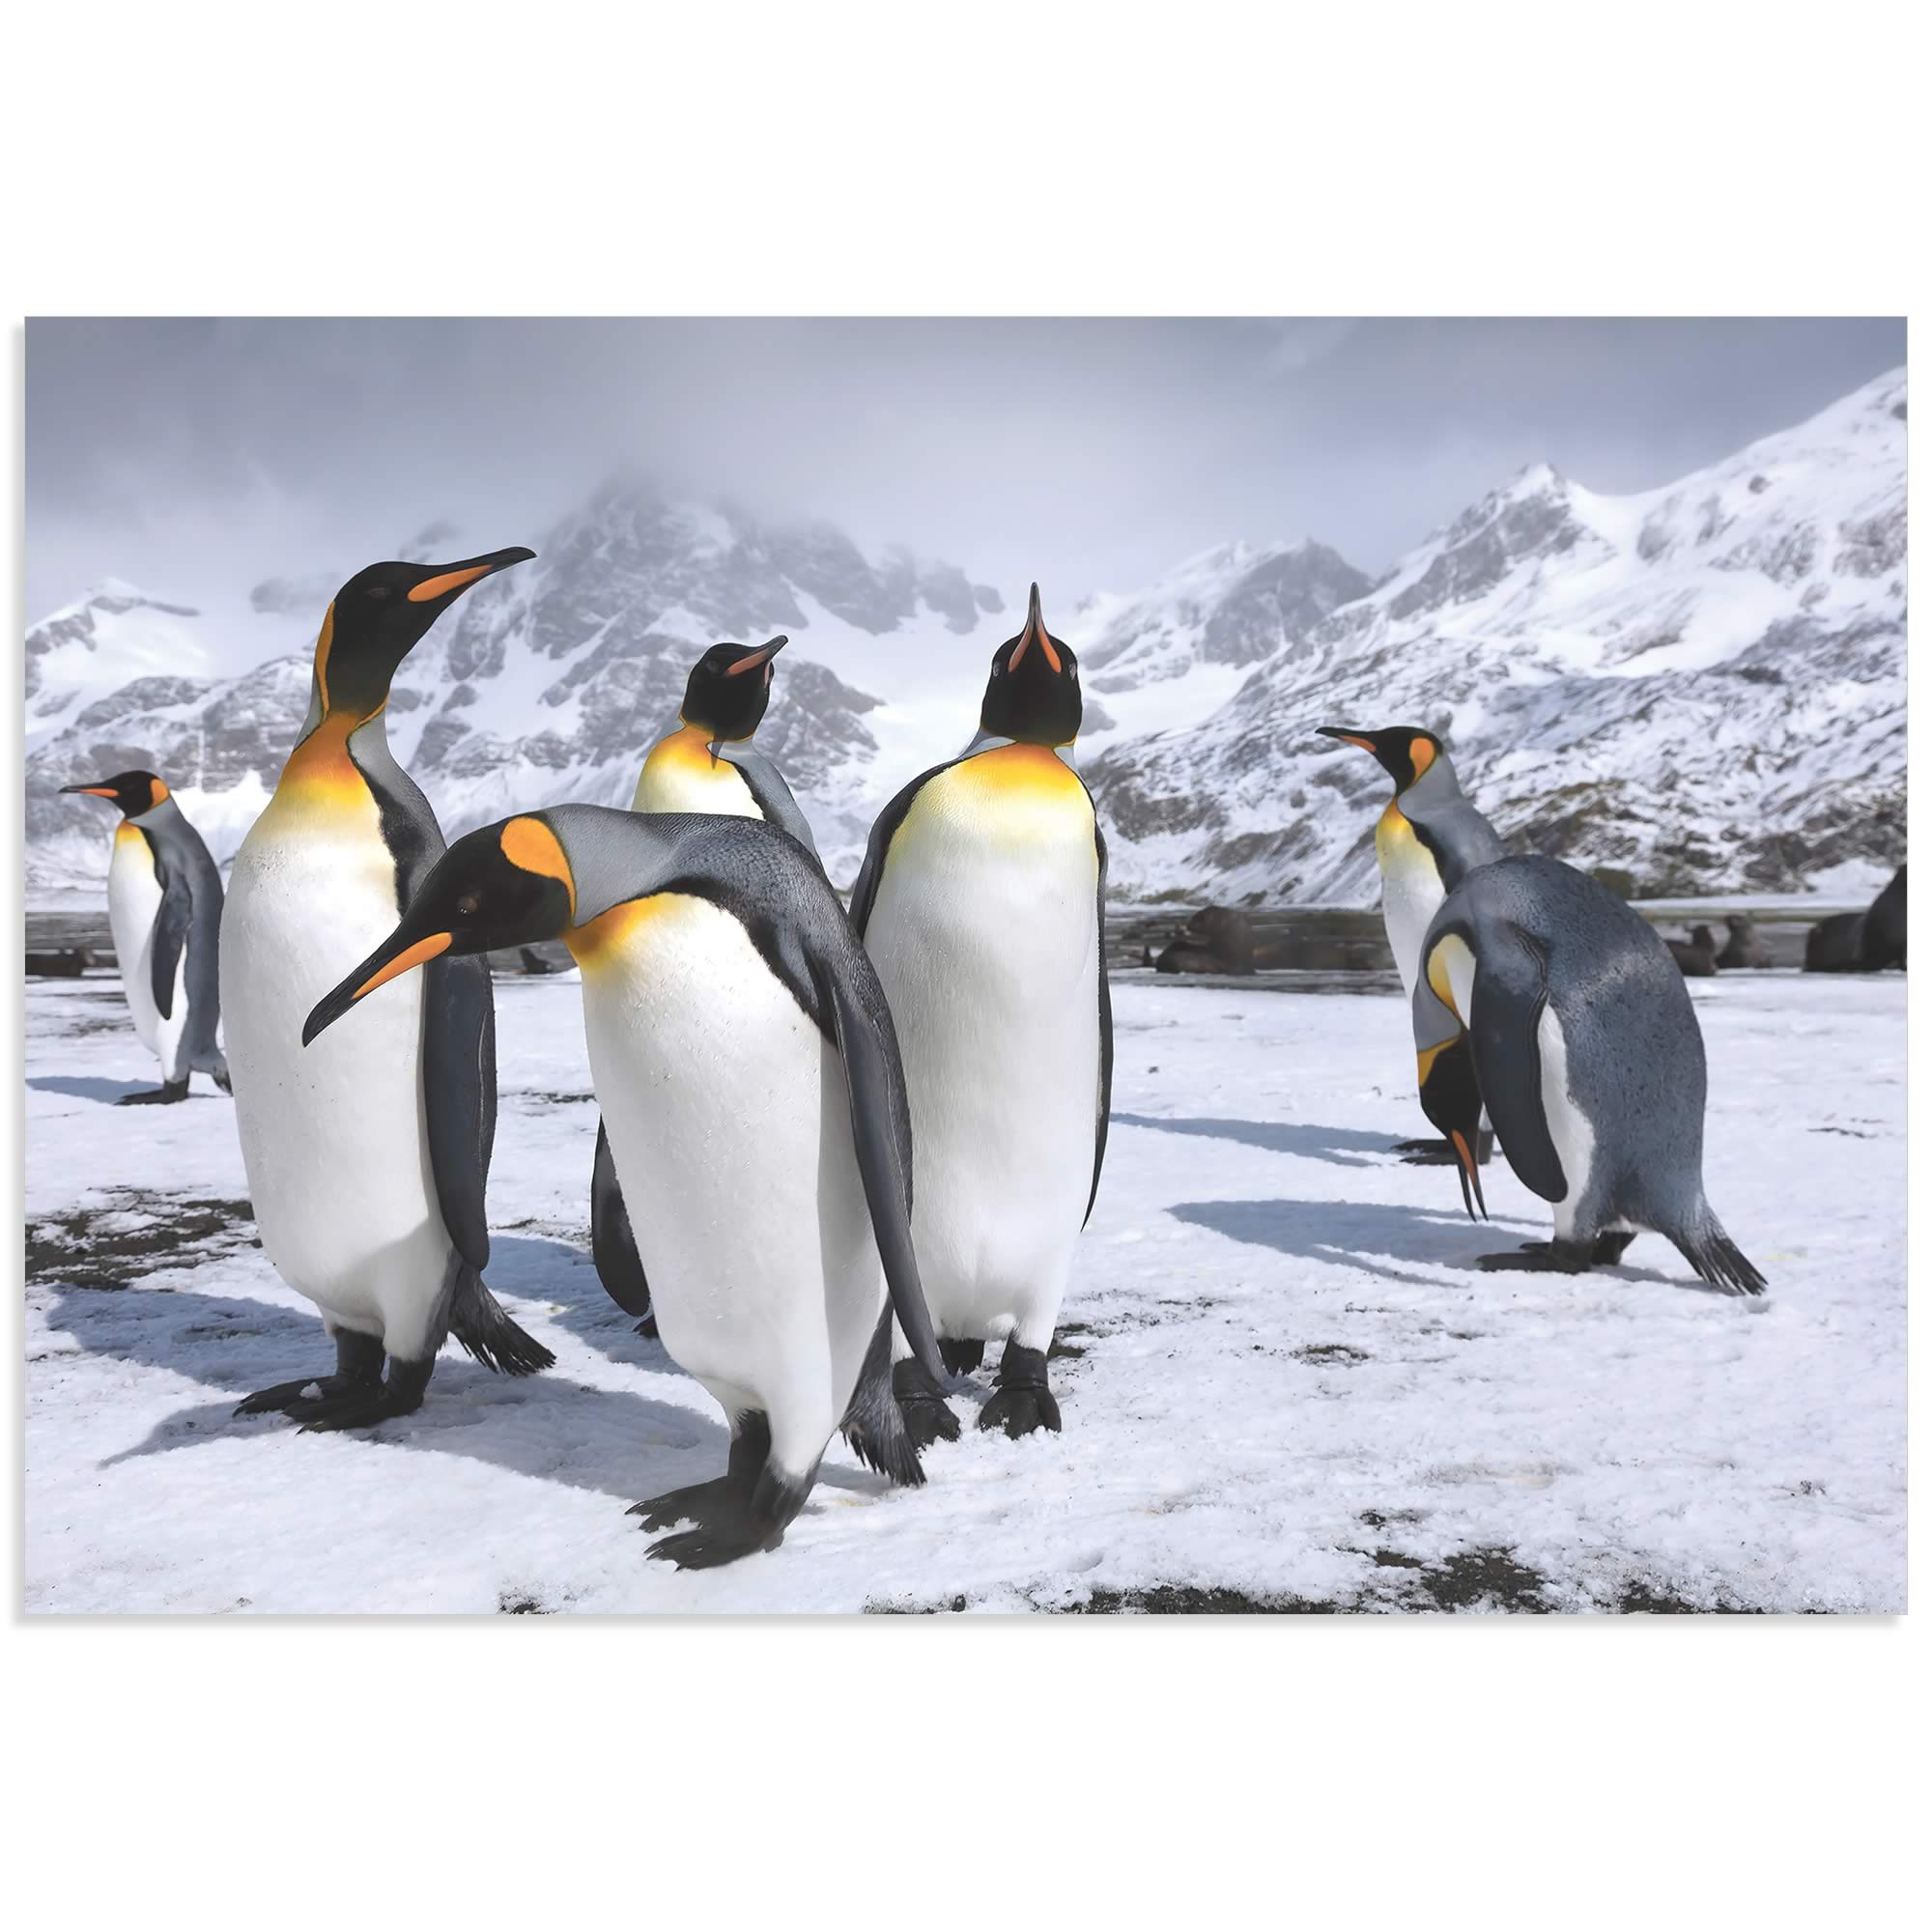 King Penguins at the Bay by Steph Oli - Penguin Wall Art on Metal or Acrylic